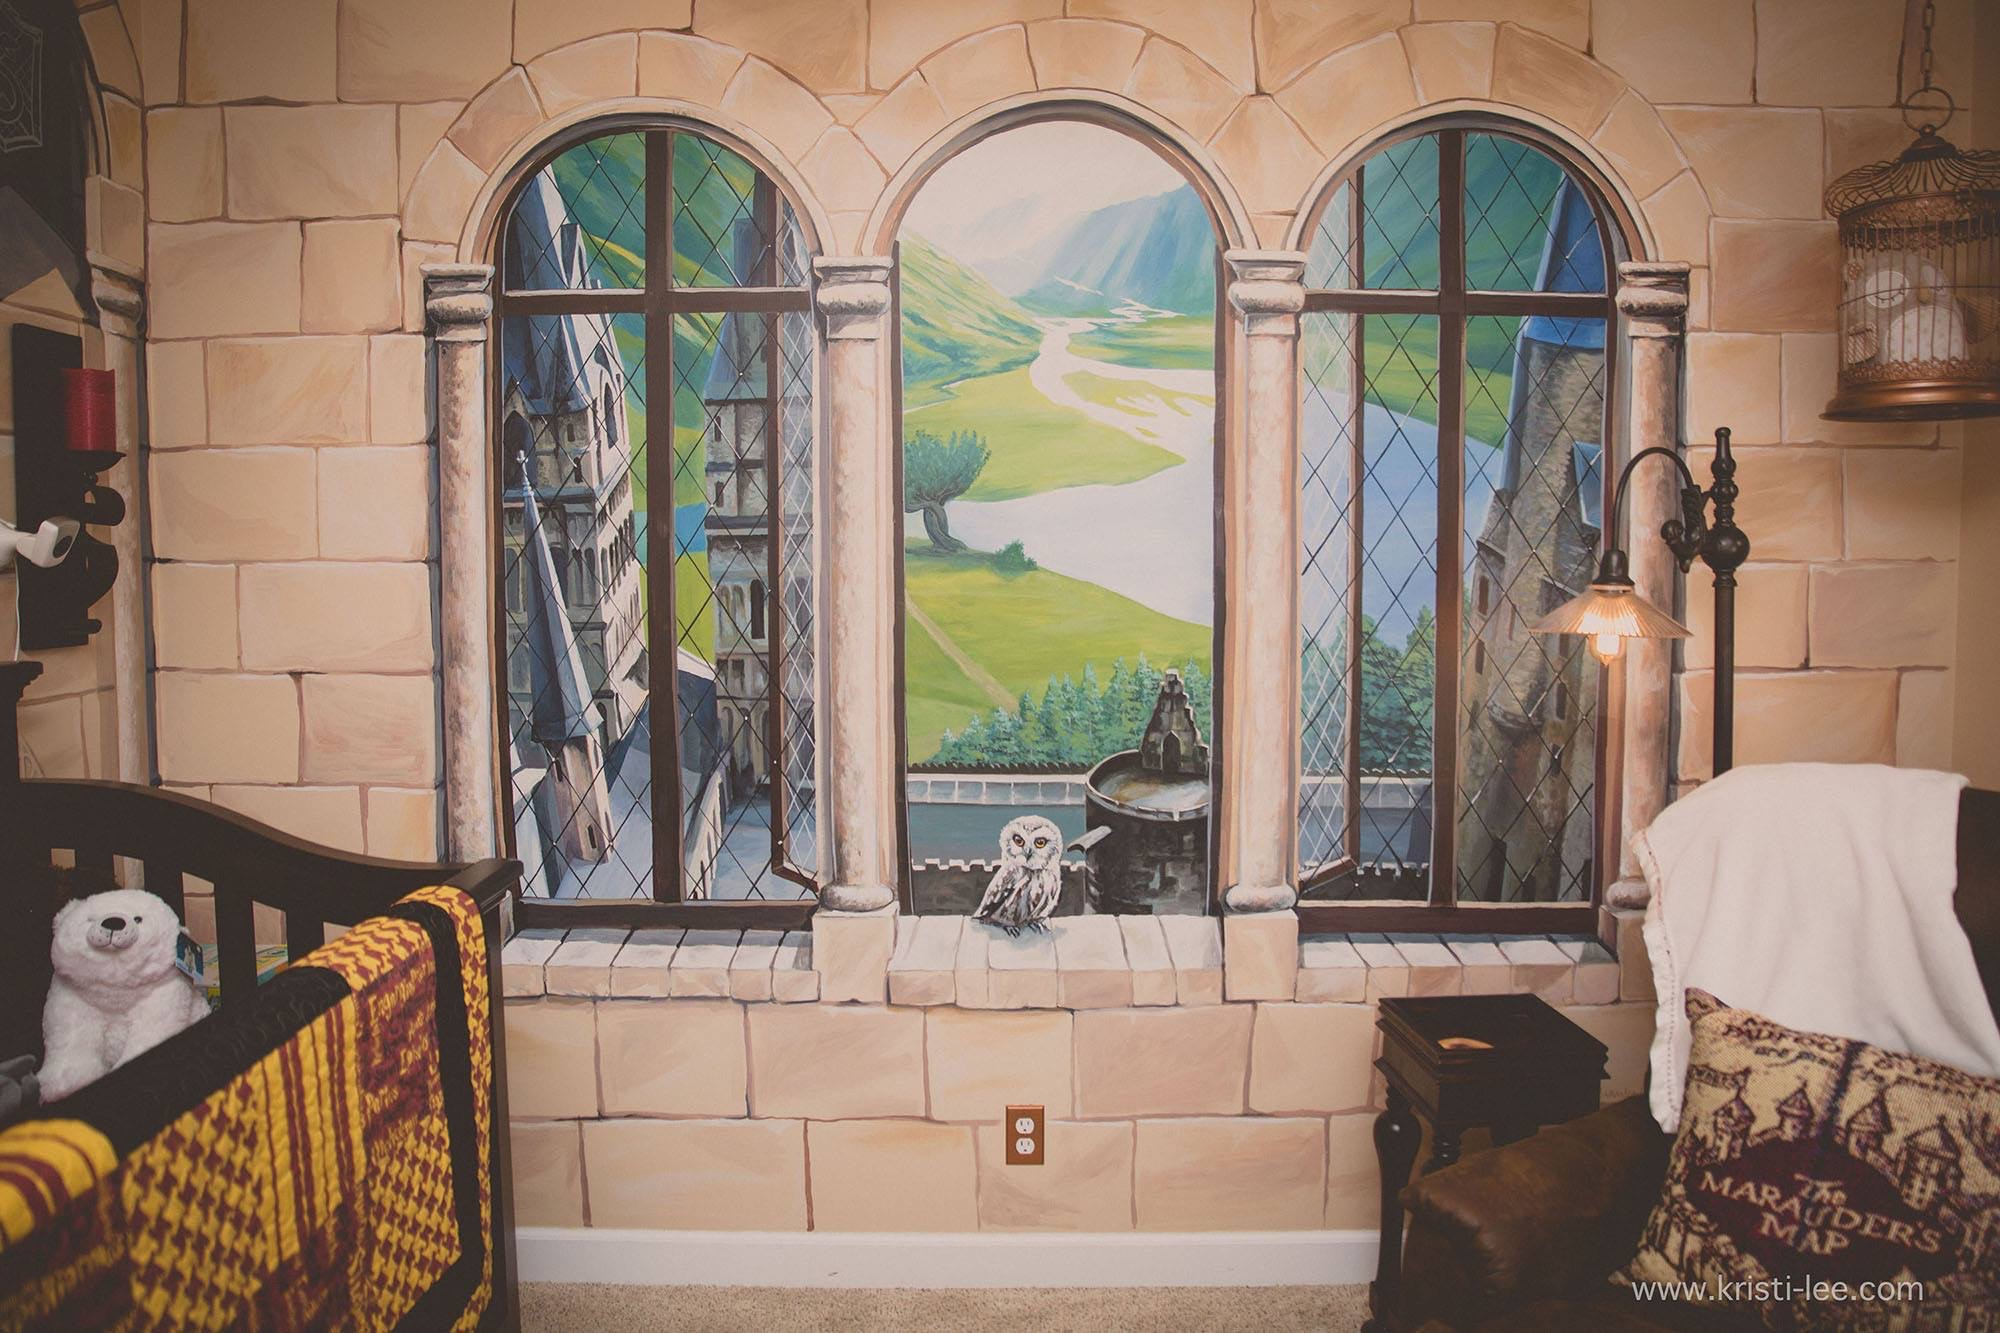 Mom Designs Incredible Harry Potter Room For Son: '4 Four Years Later and He Still Loves It!'